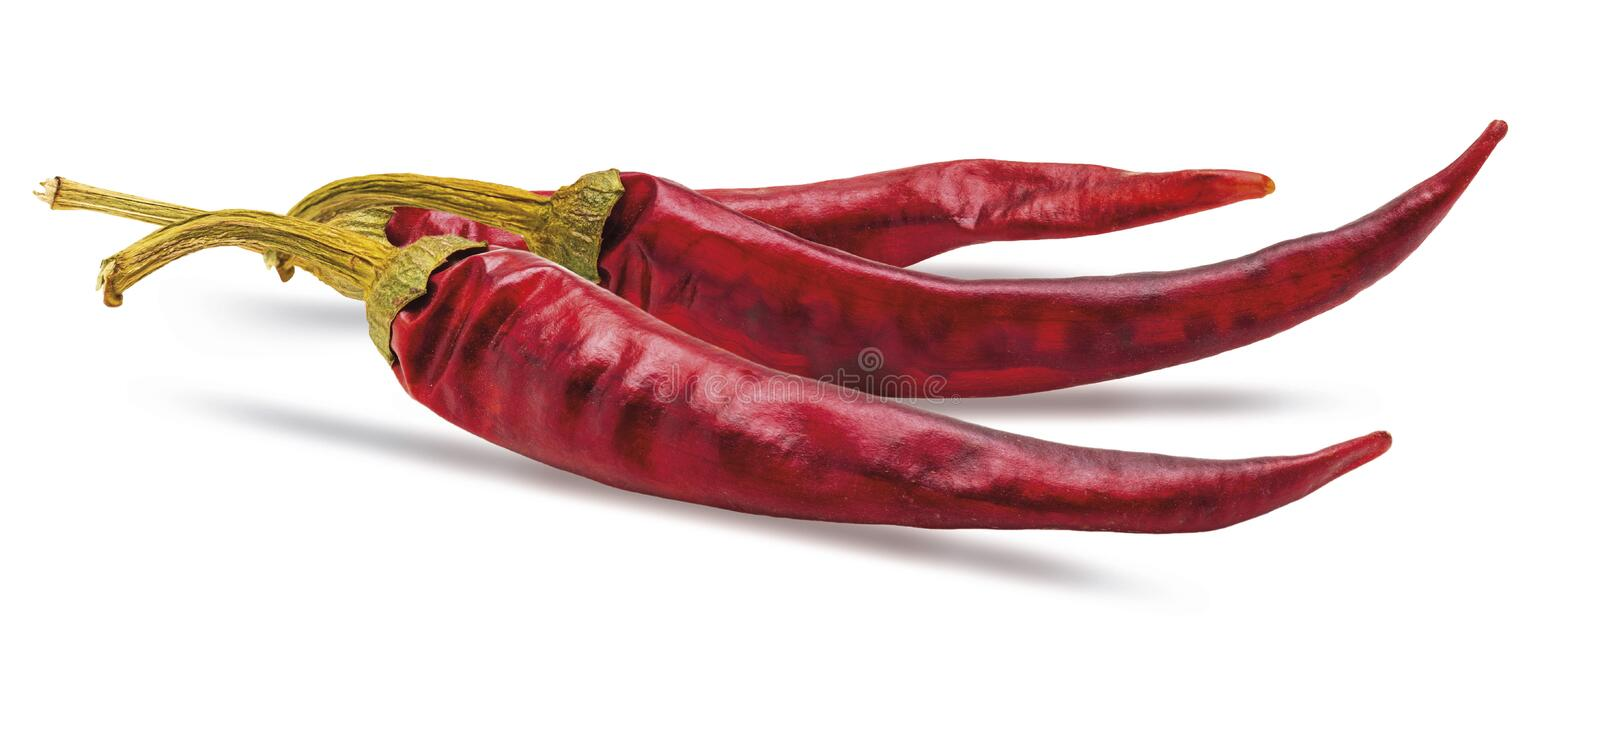 3 poivrons de piments rouges secs photographie stock